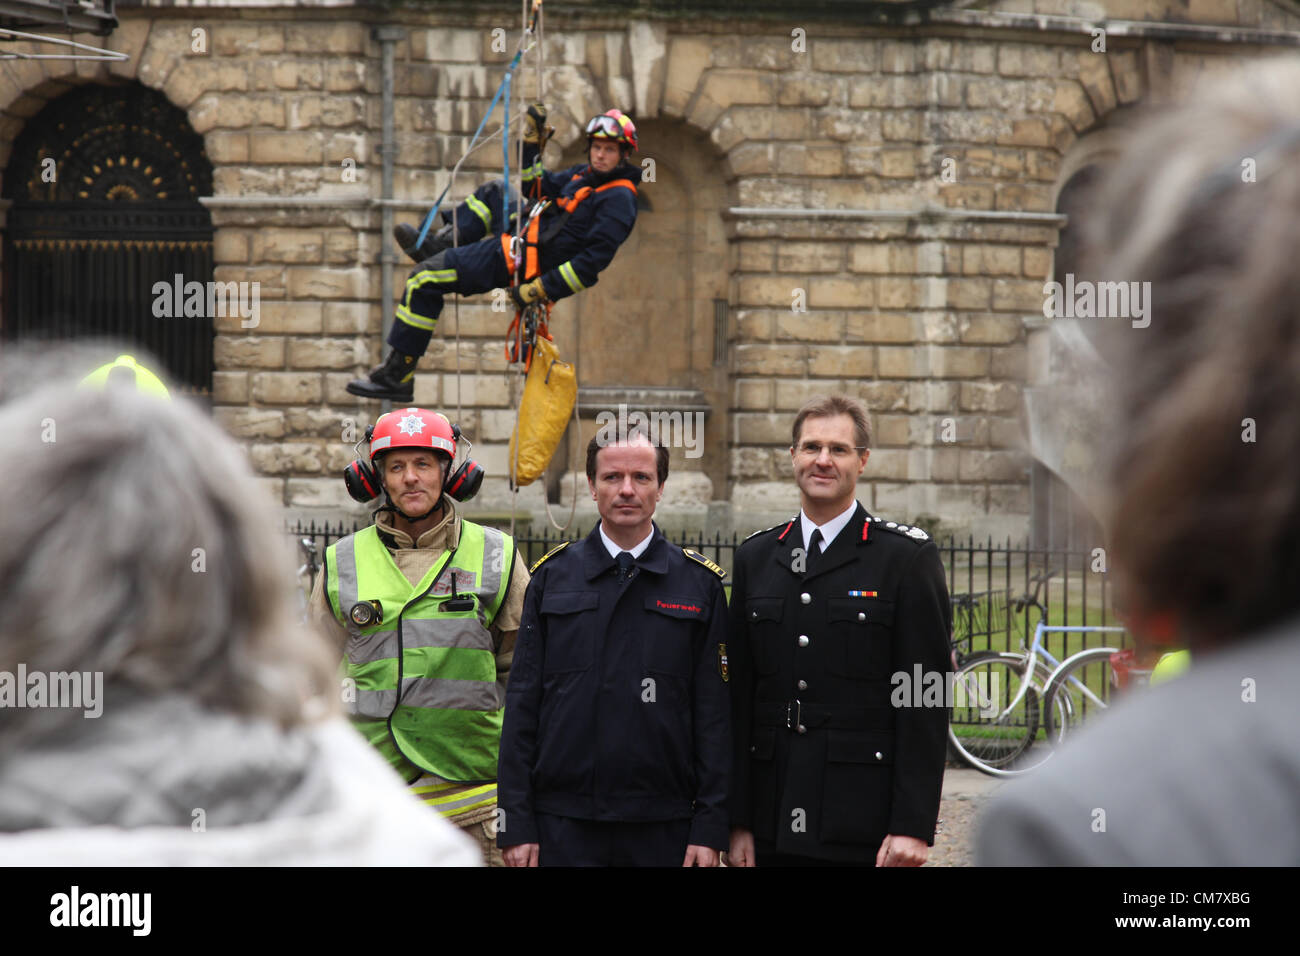 Oxford, UK. 24th October 2012. Chief fire officer David Etheridge meets his counterpart from Bonn;. The meeting - Stock Image